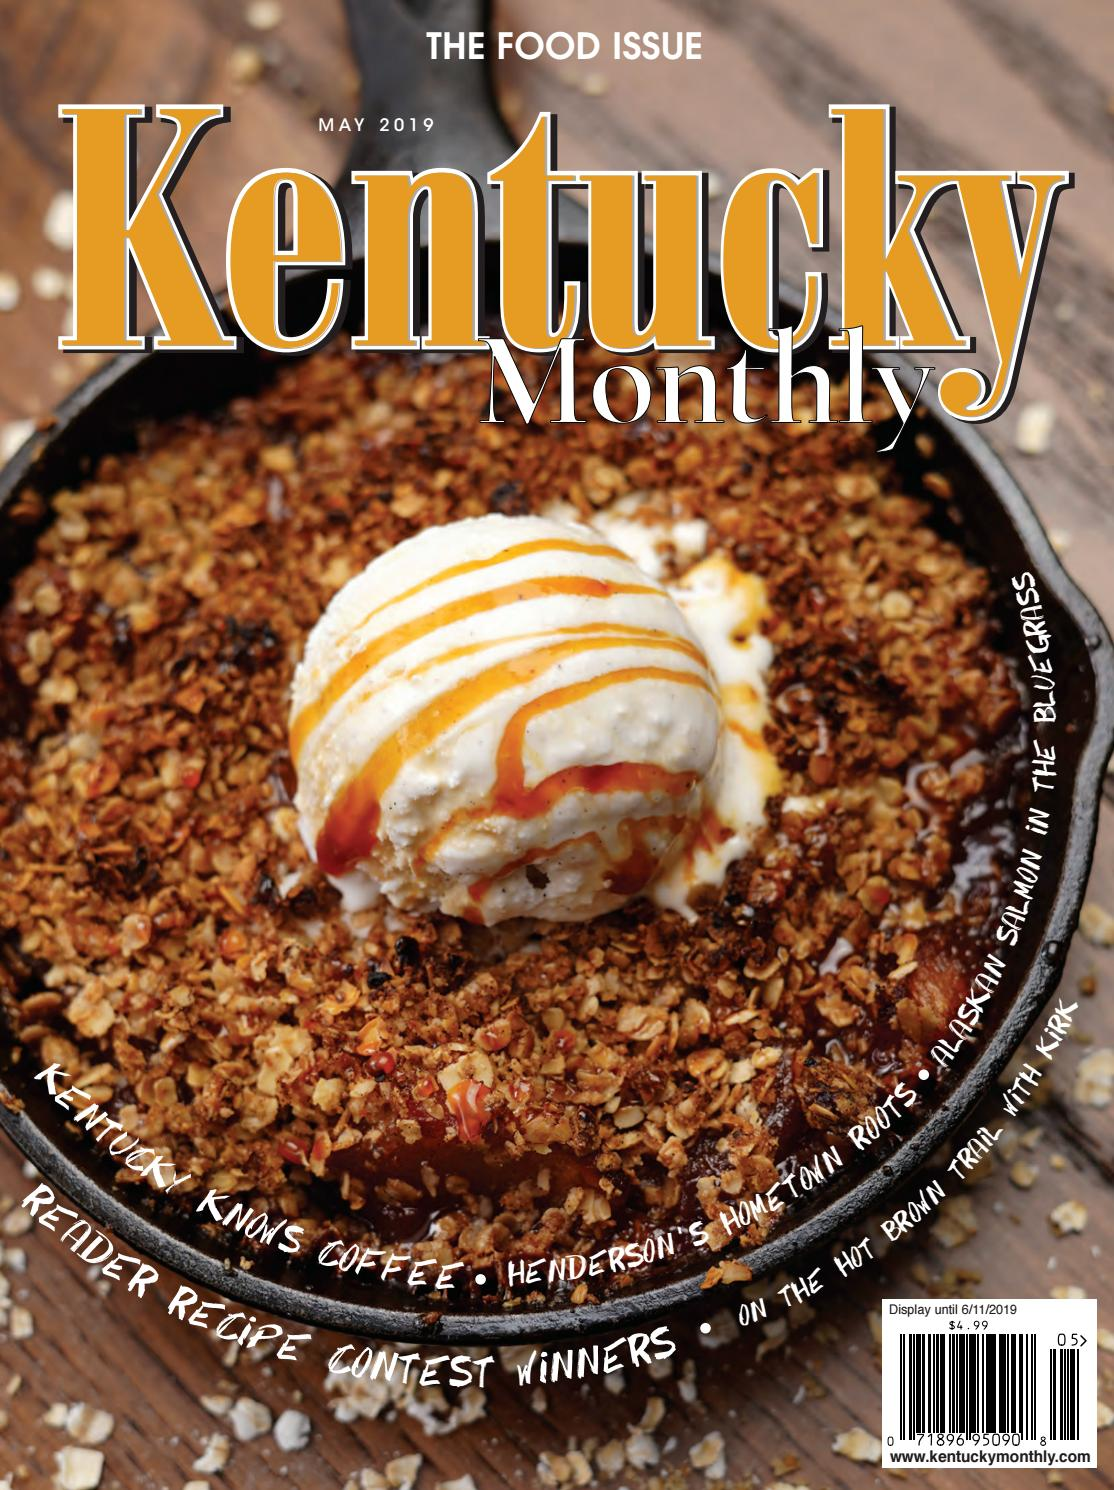 Crepe Party Lagrange May 2019 Kentucky Monthly Magazine